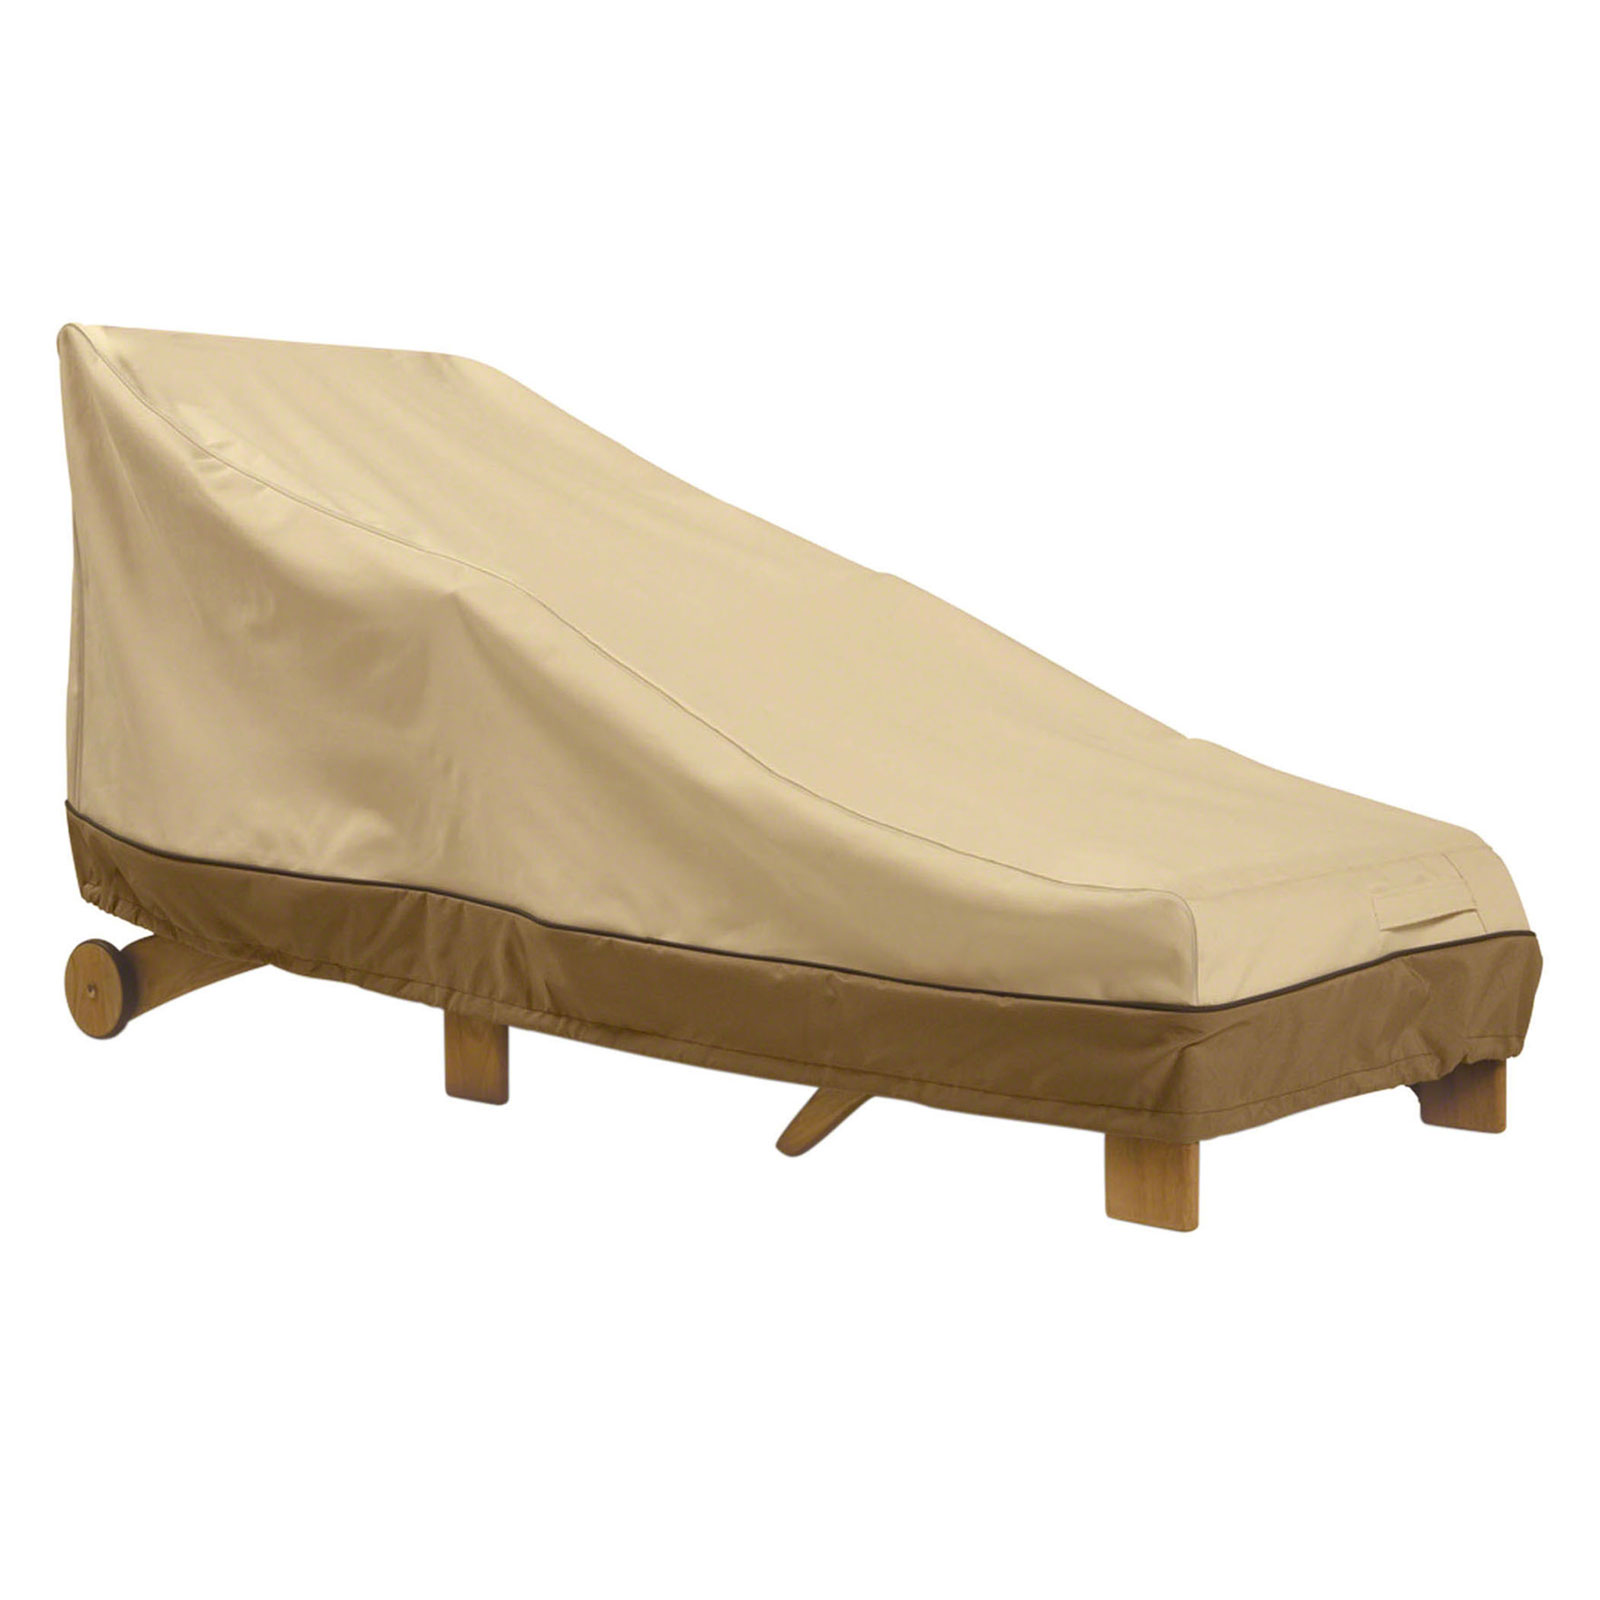 Chaise lounge cover veranda in patio furniture covers for Chaise covers outdoor furniture